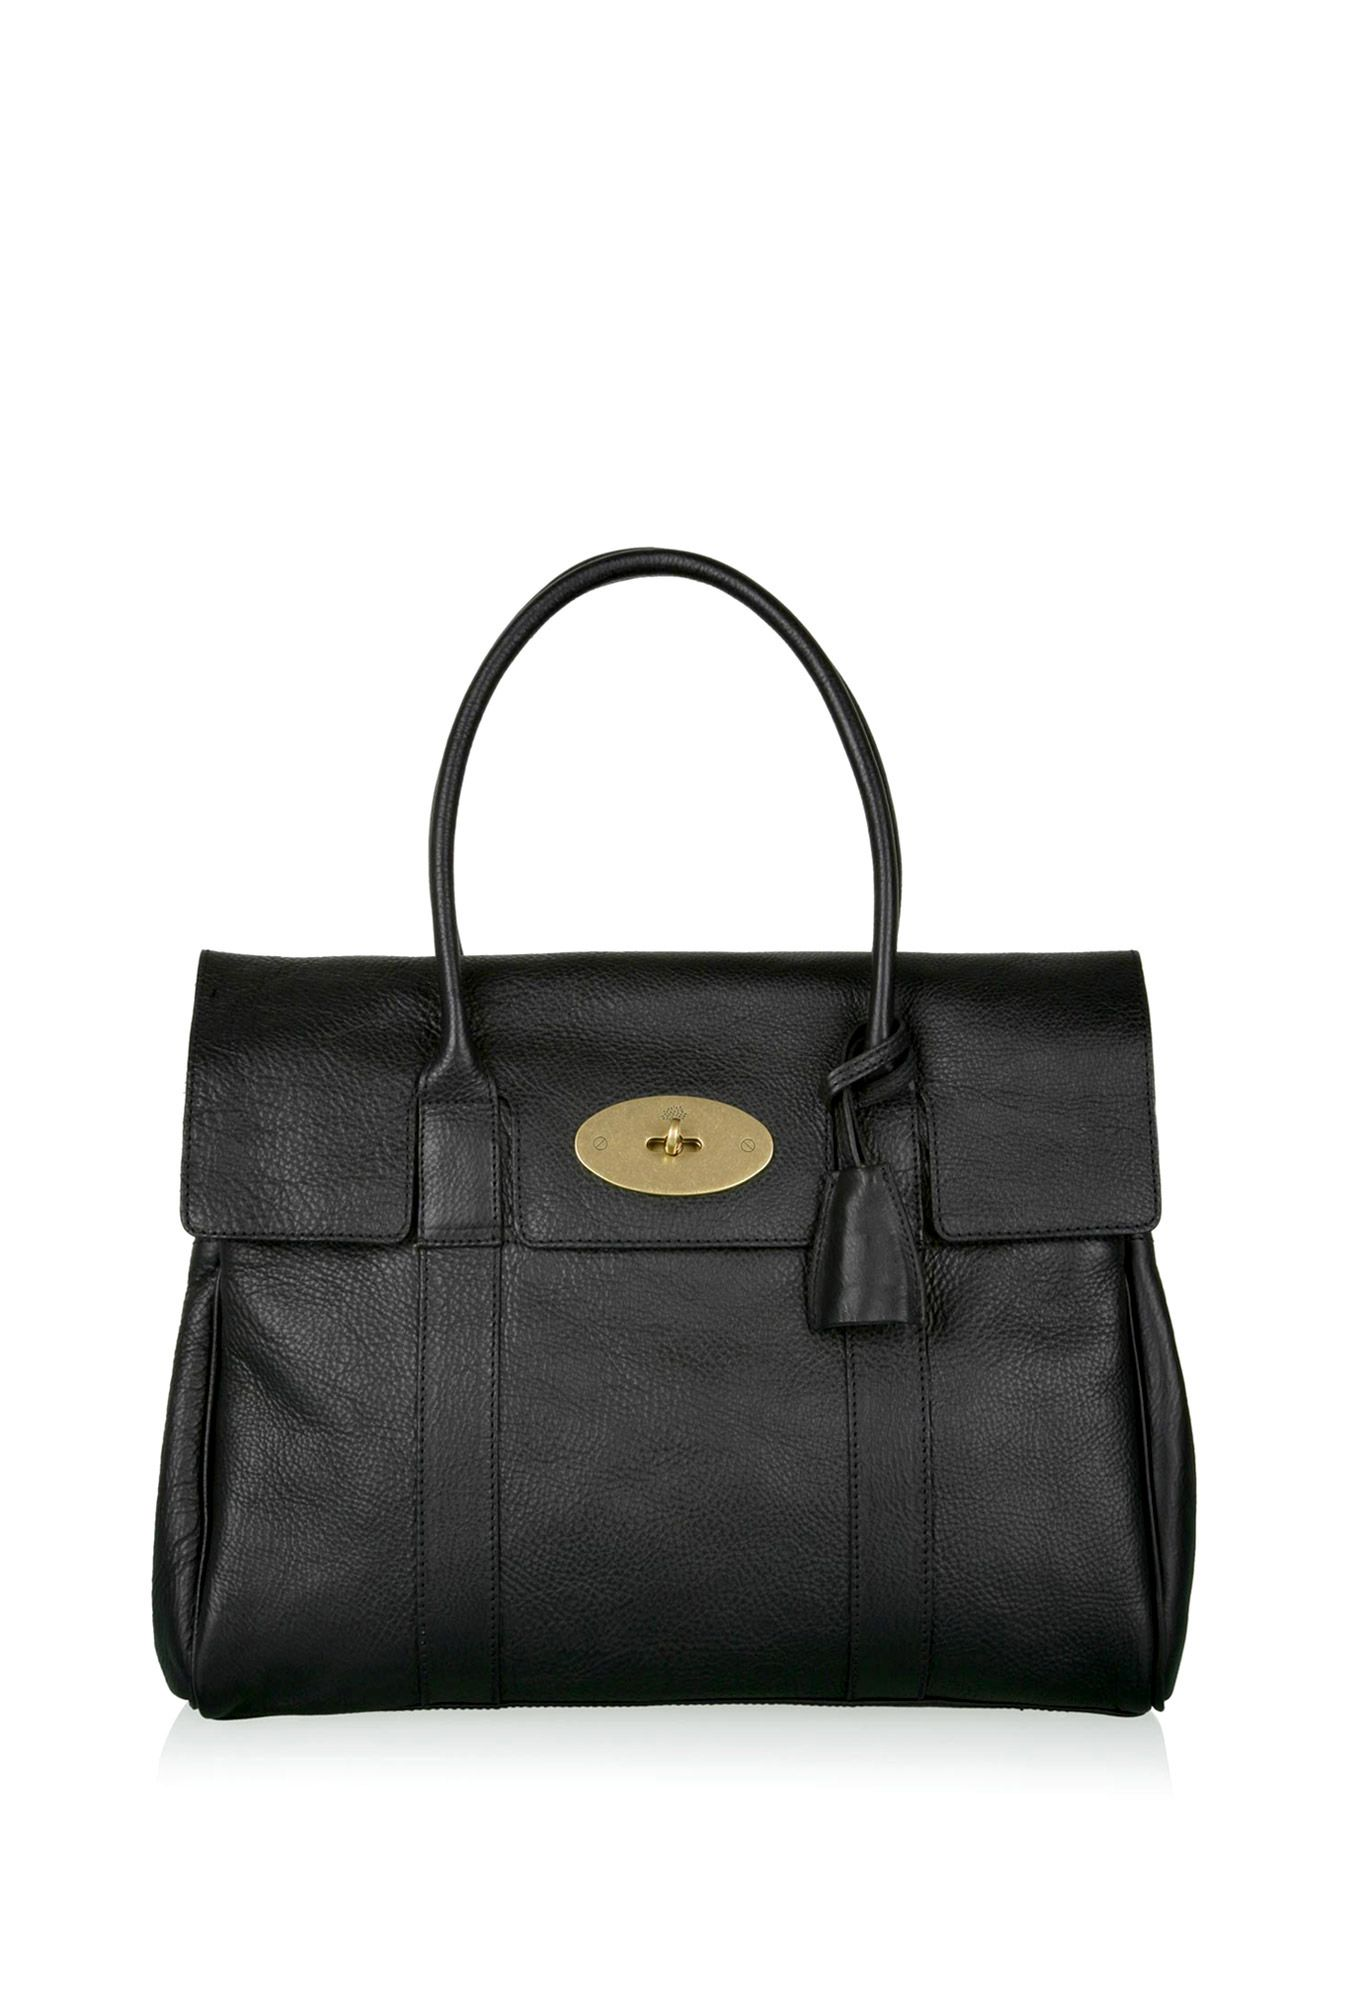 classic mulberry bag!! I have from Years ago!! Amazing that most all  designers copy this very bag ! 0c2f06e331